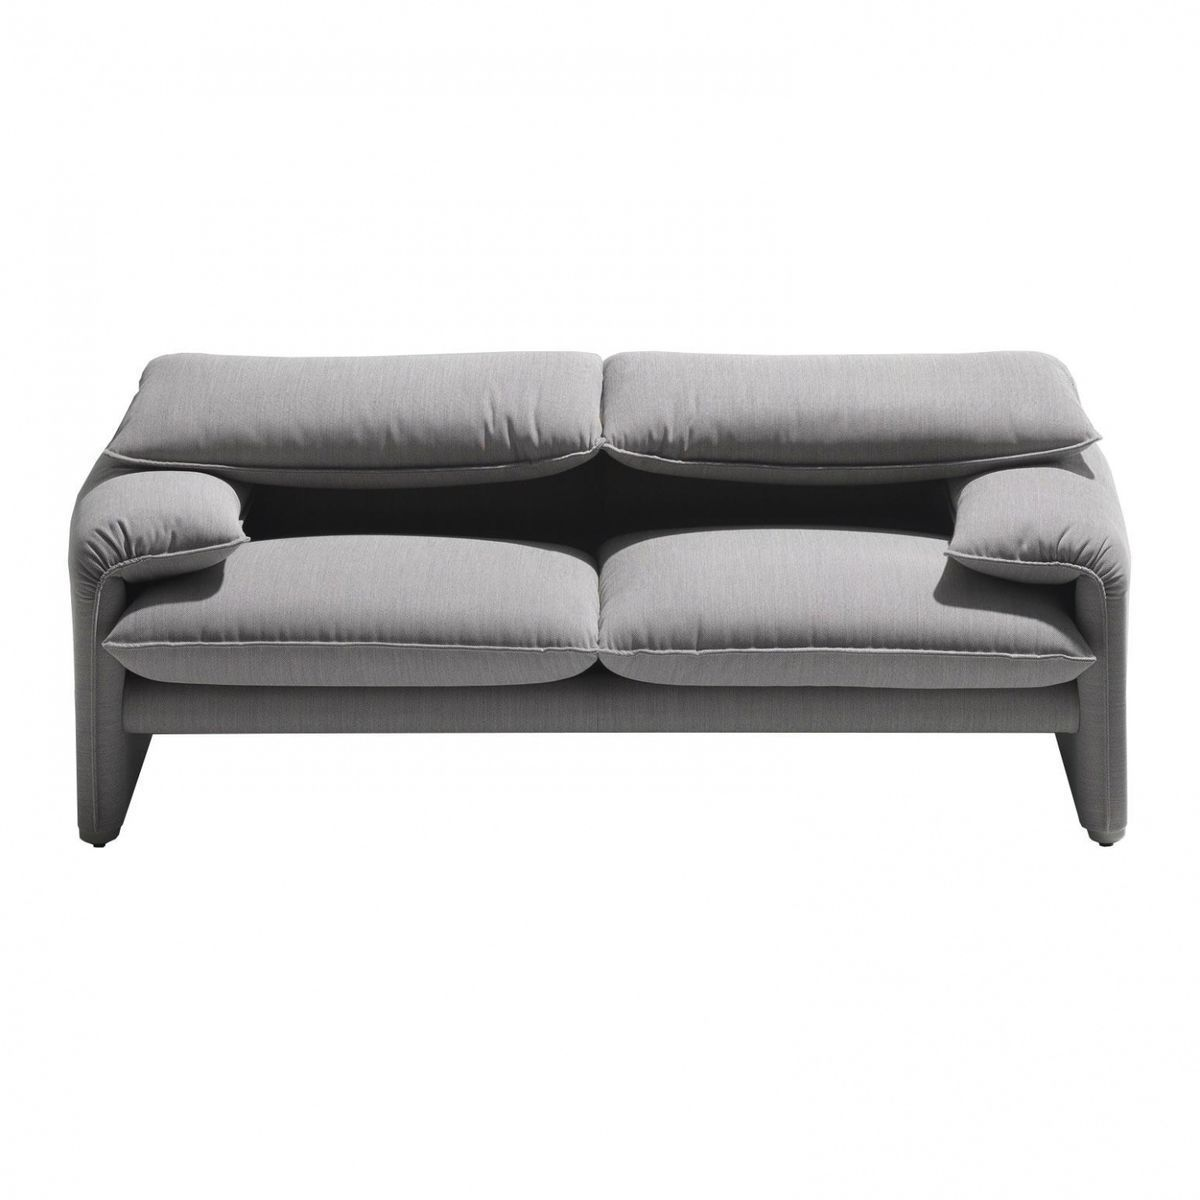 maralunga 40 2 sitzer sofa 190x86cm cassina. Black Bedroom Furniture Sets. Home Design Ideas